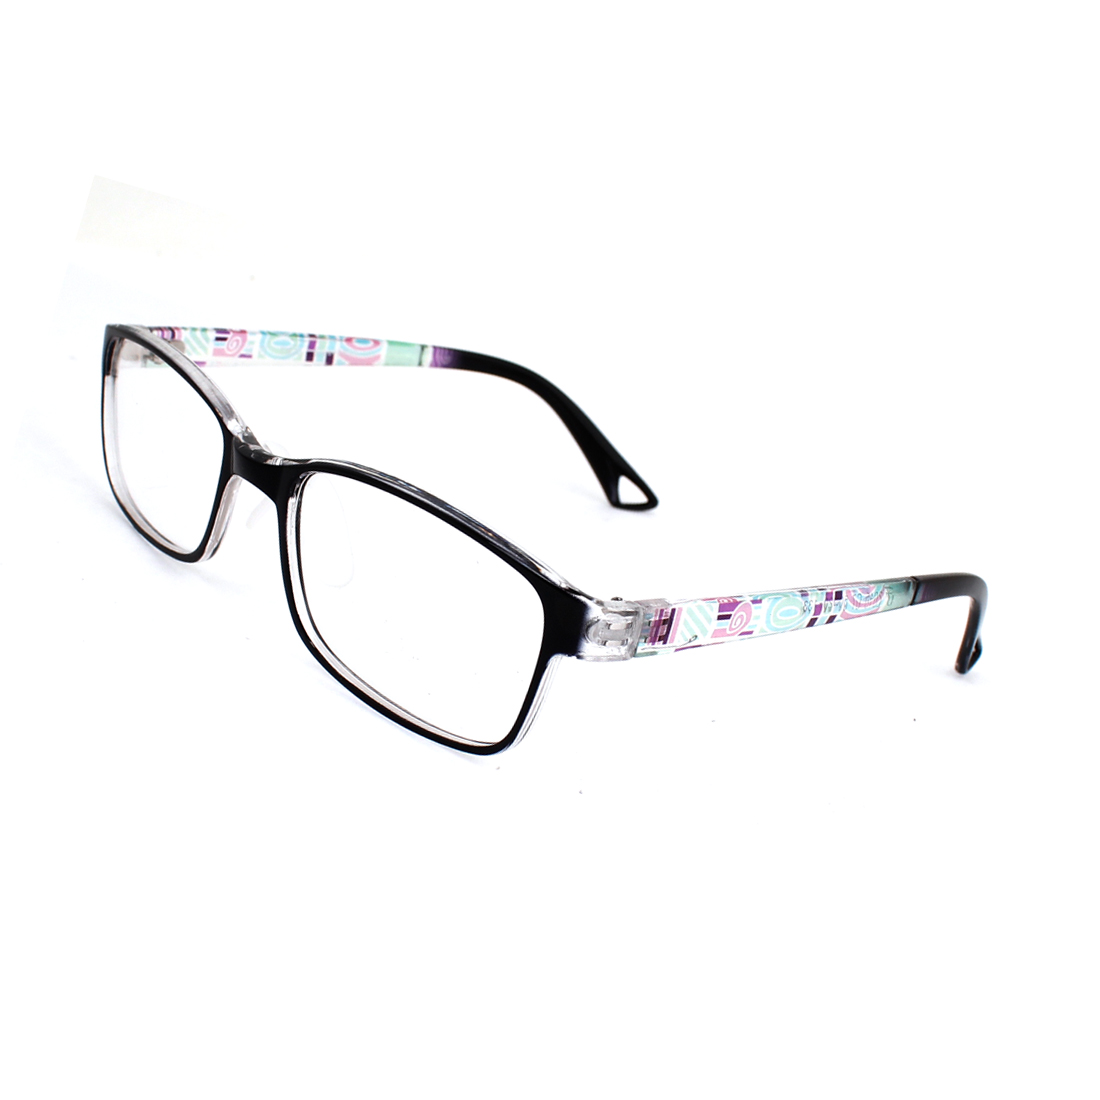 Women Black Full Rim Frame Single Bridge Plastic Clear Lens Glasses Spectacles